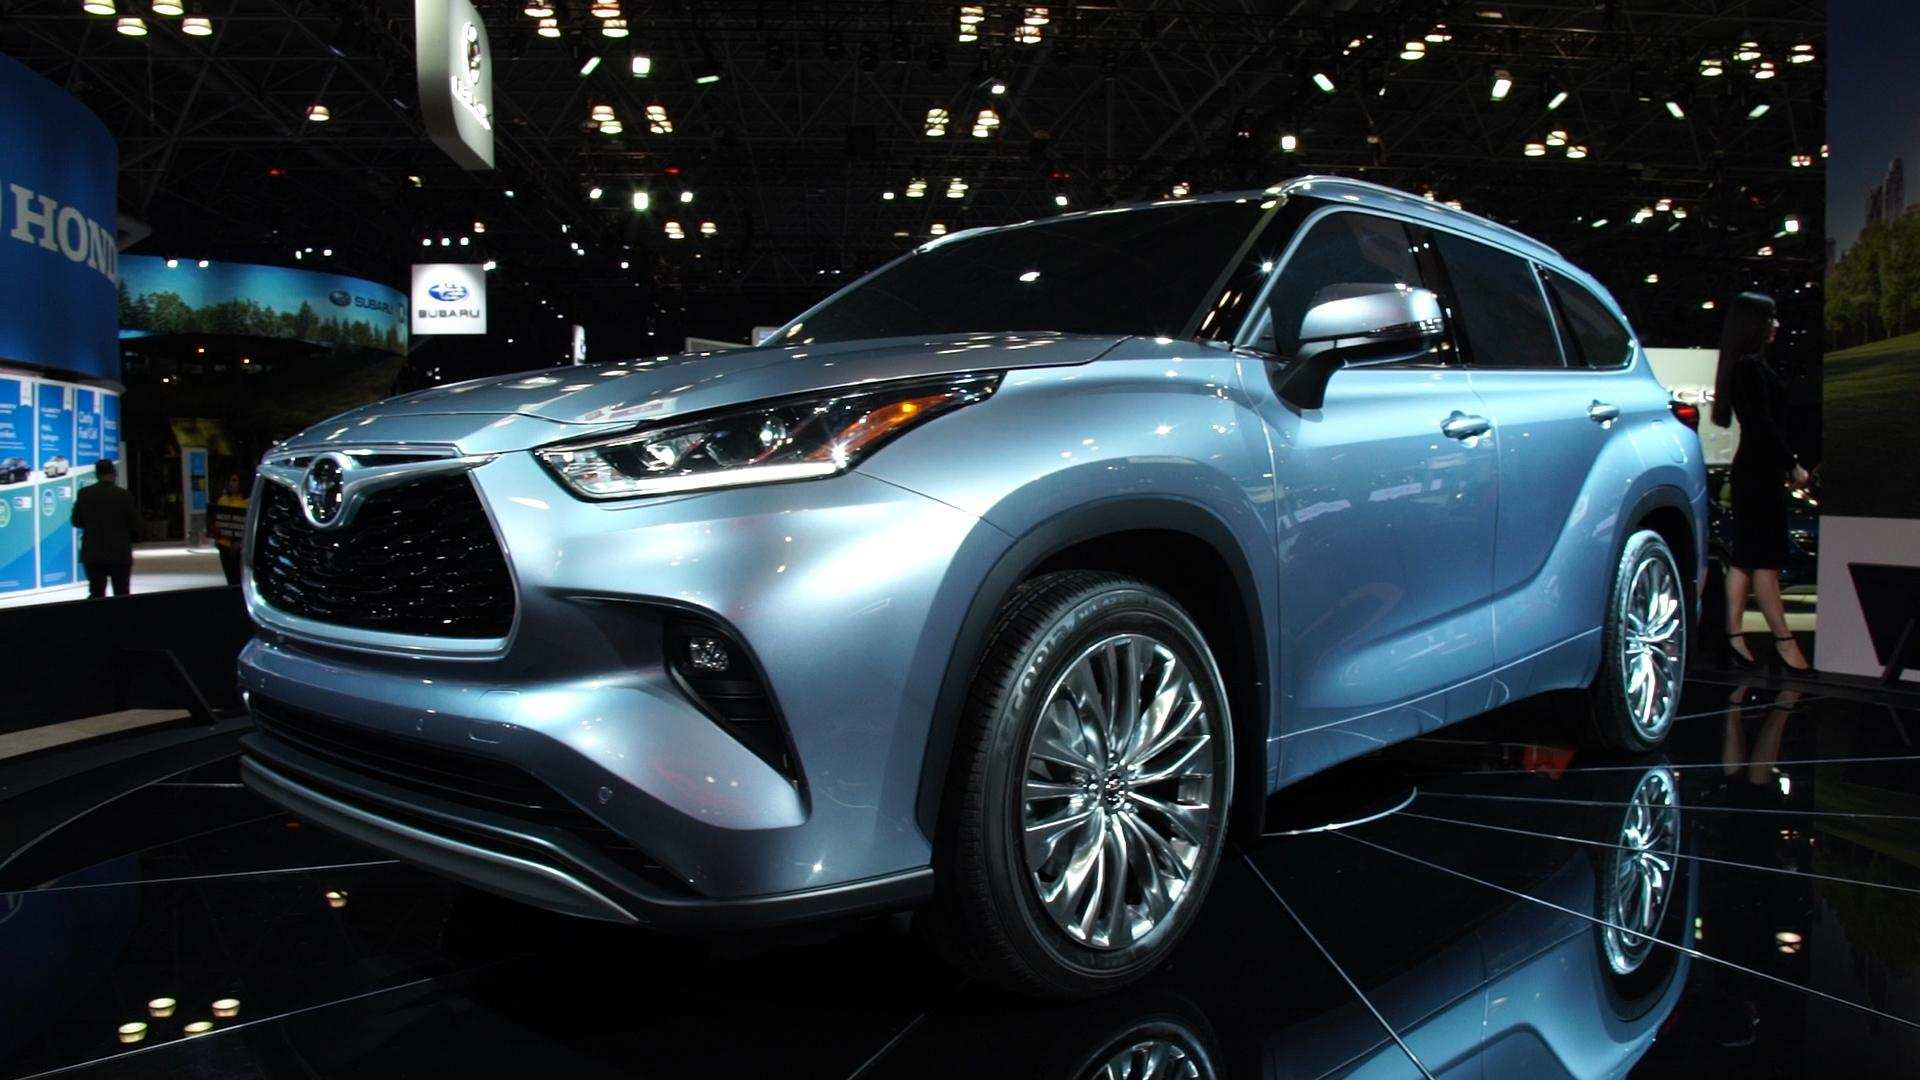 55 New Toyota Highlander 2020 Redesign Specs and Review by Toyota Highlander 2020 Redesign